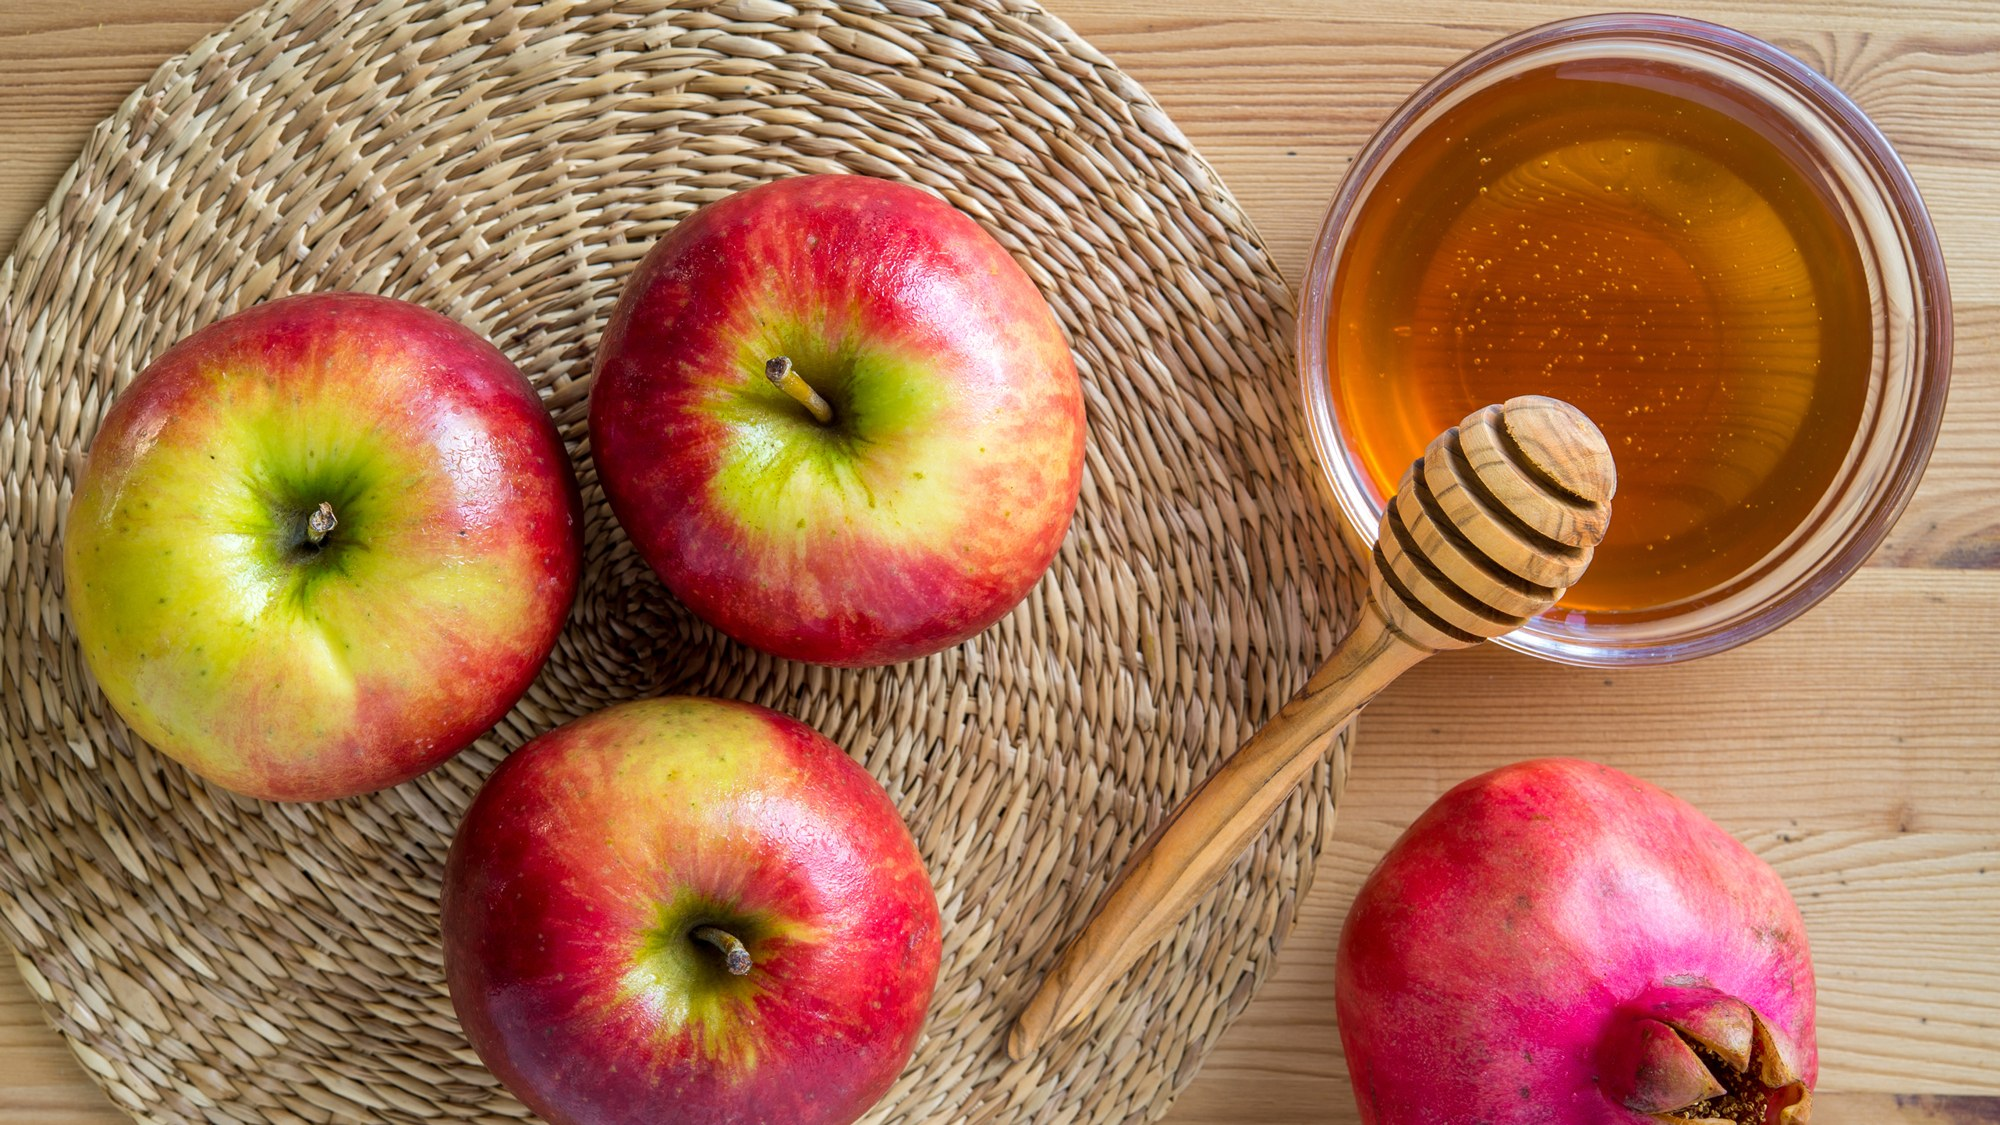 Health Benefits Of Apple and Honey